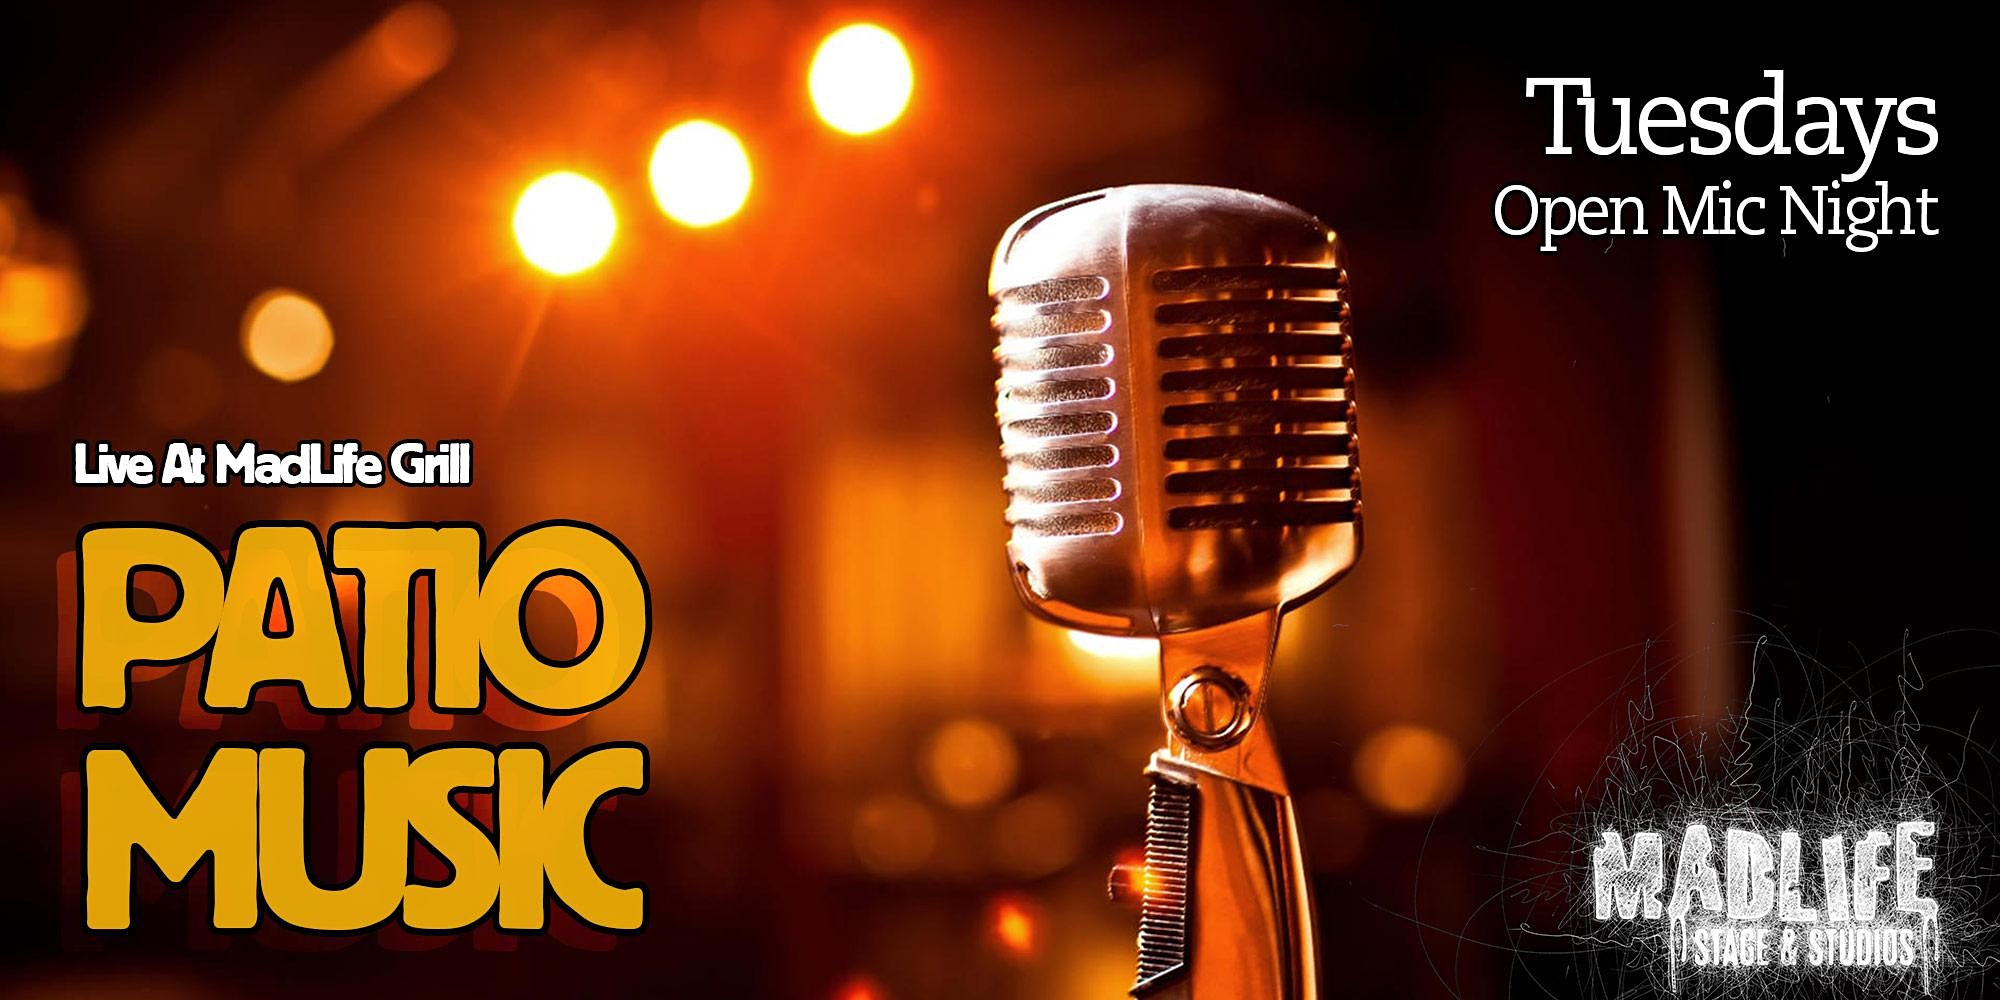 TUE Patio Music Open Mic Night — Hosted by Greg Shaddix